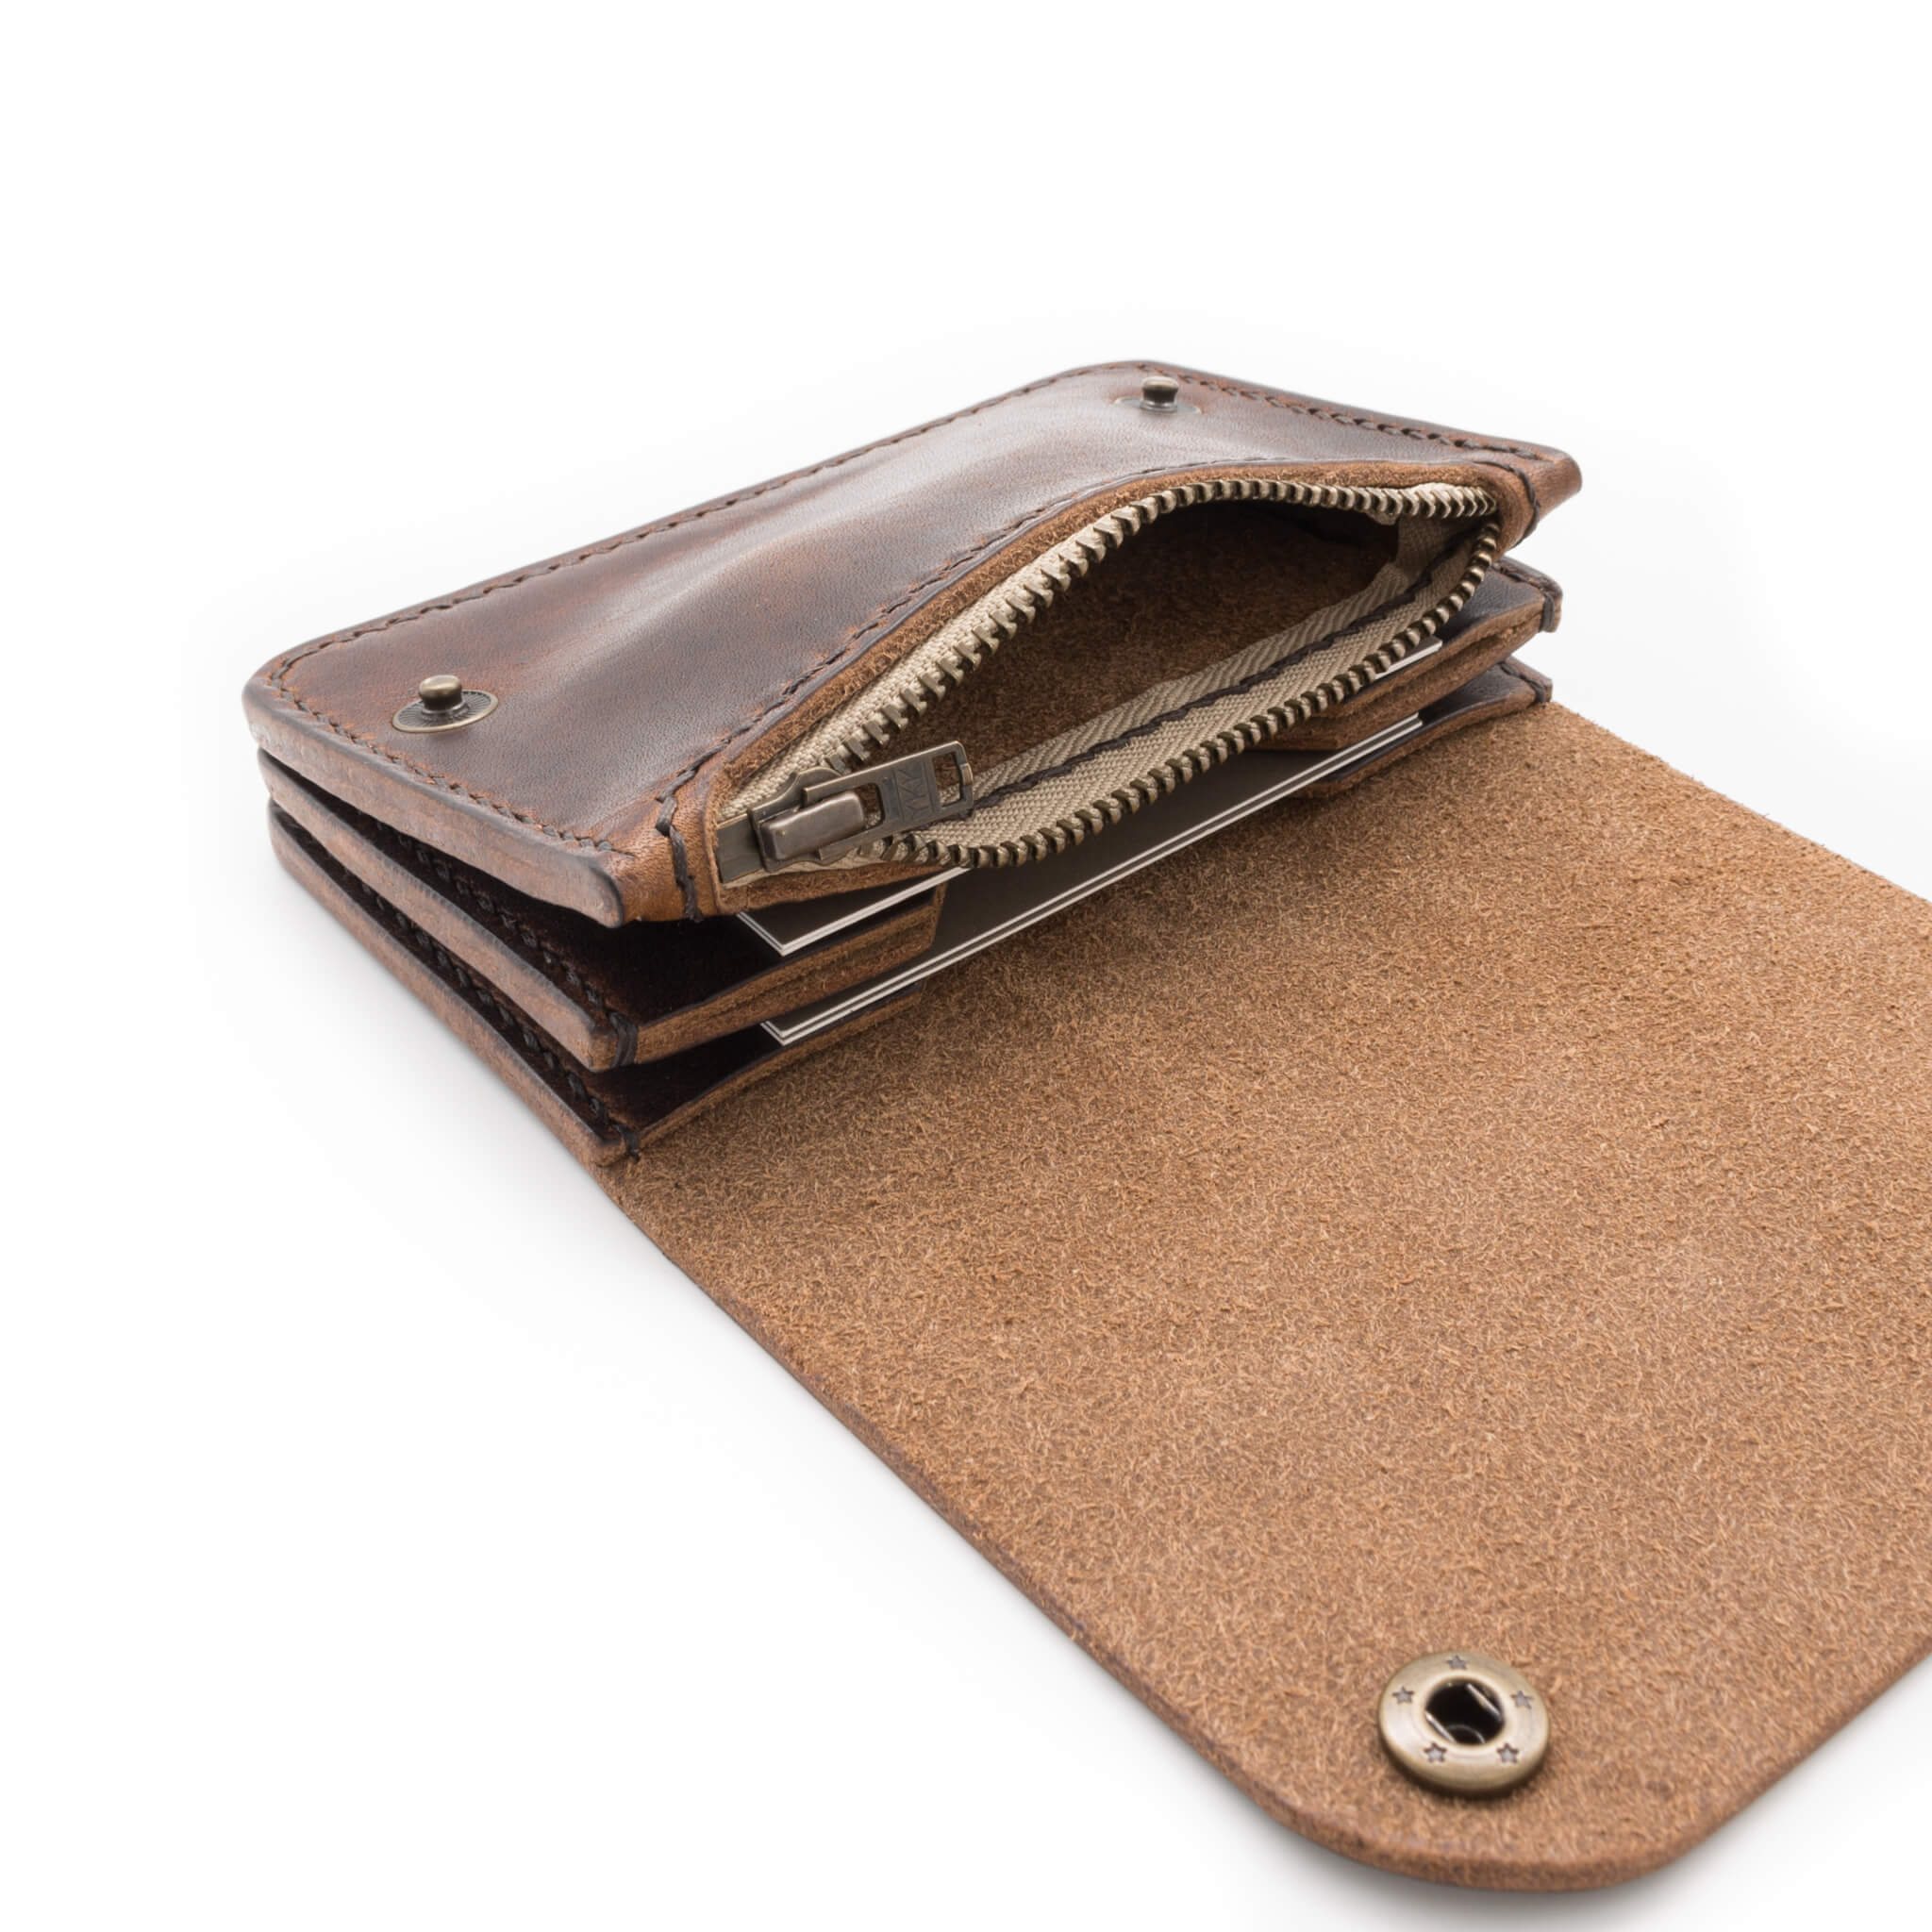 YKK brass zipper, handmade leather wallet, Horween Derby leather